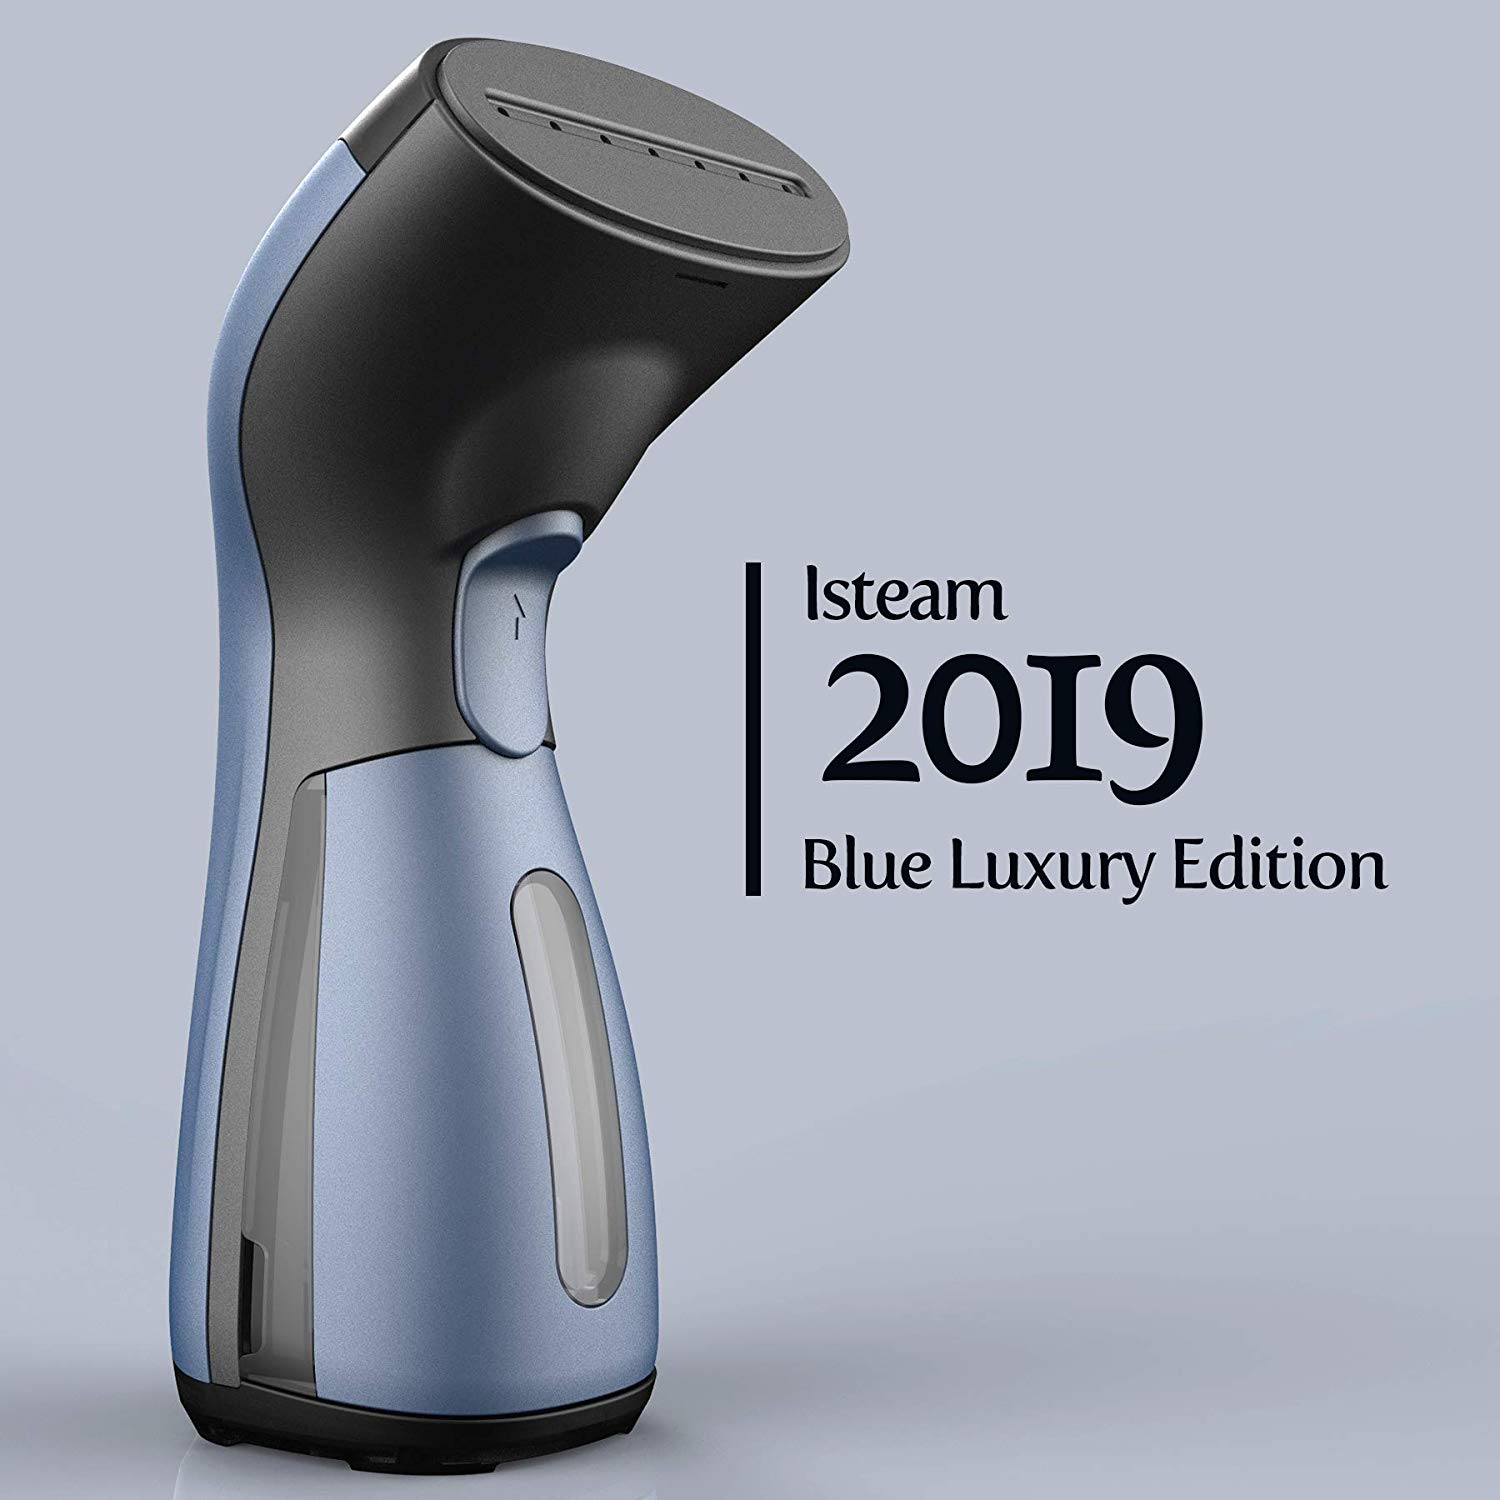 iSteam Luxury Edition [2020] Clothes' Steamer